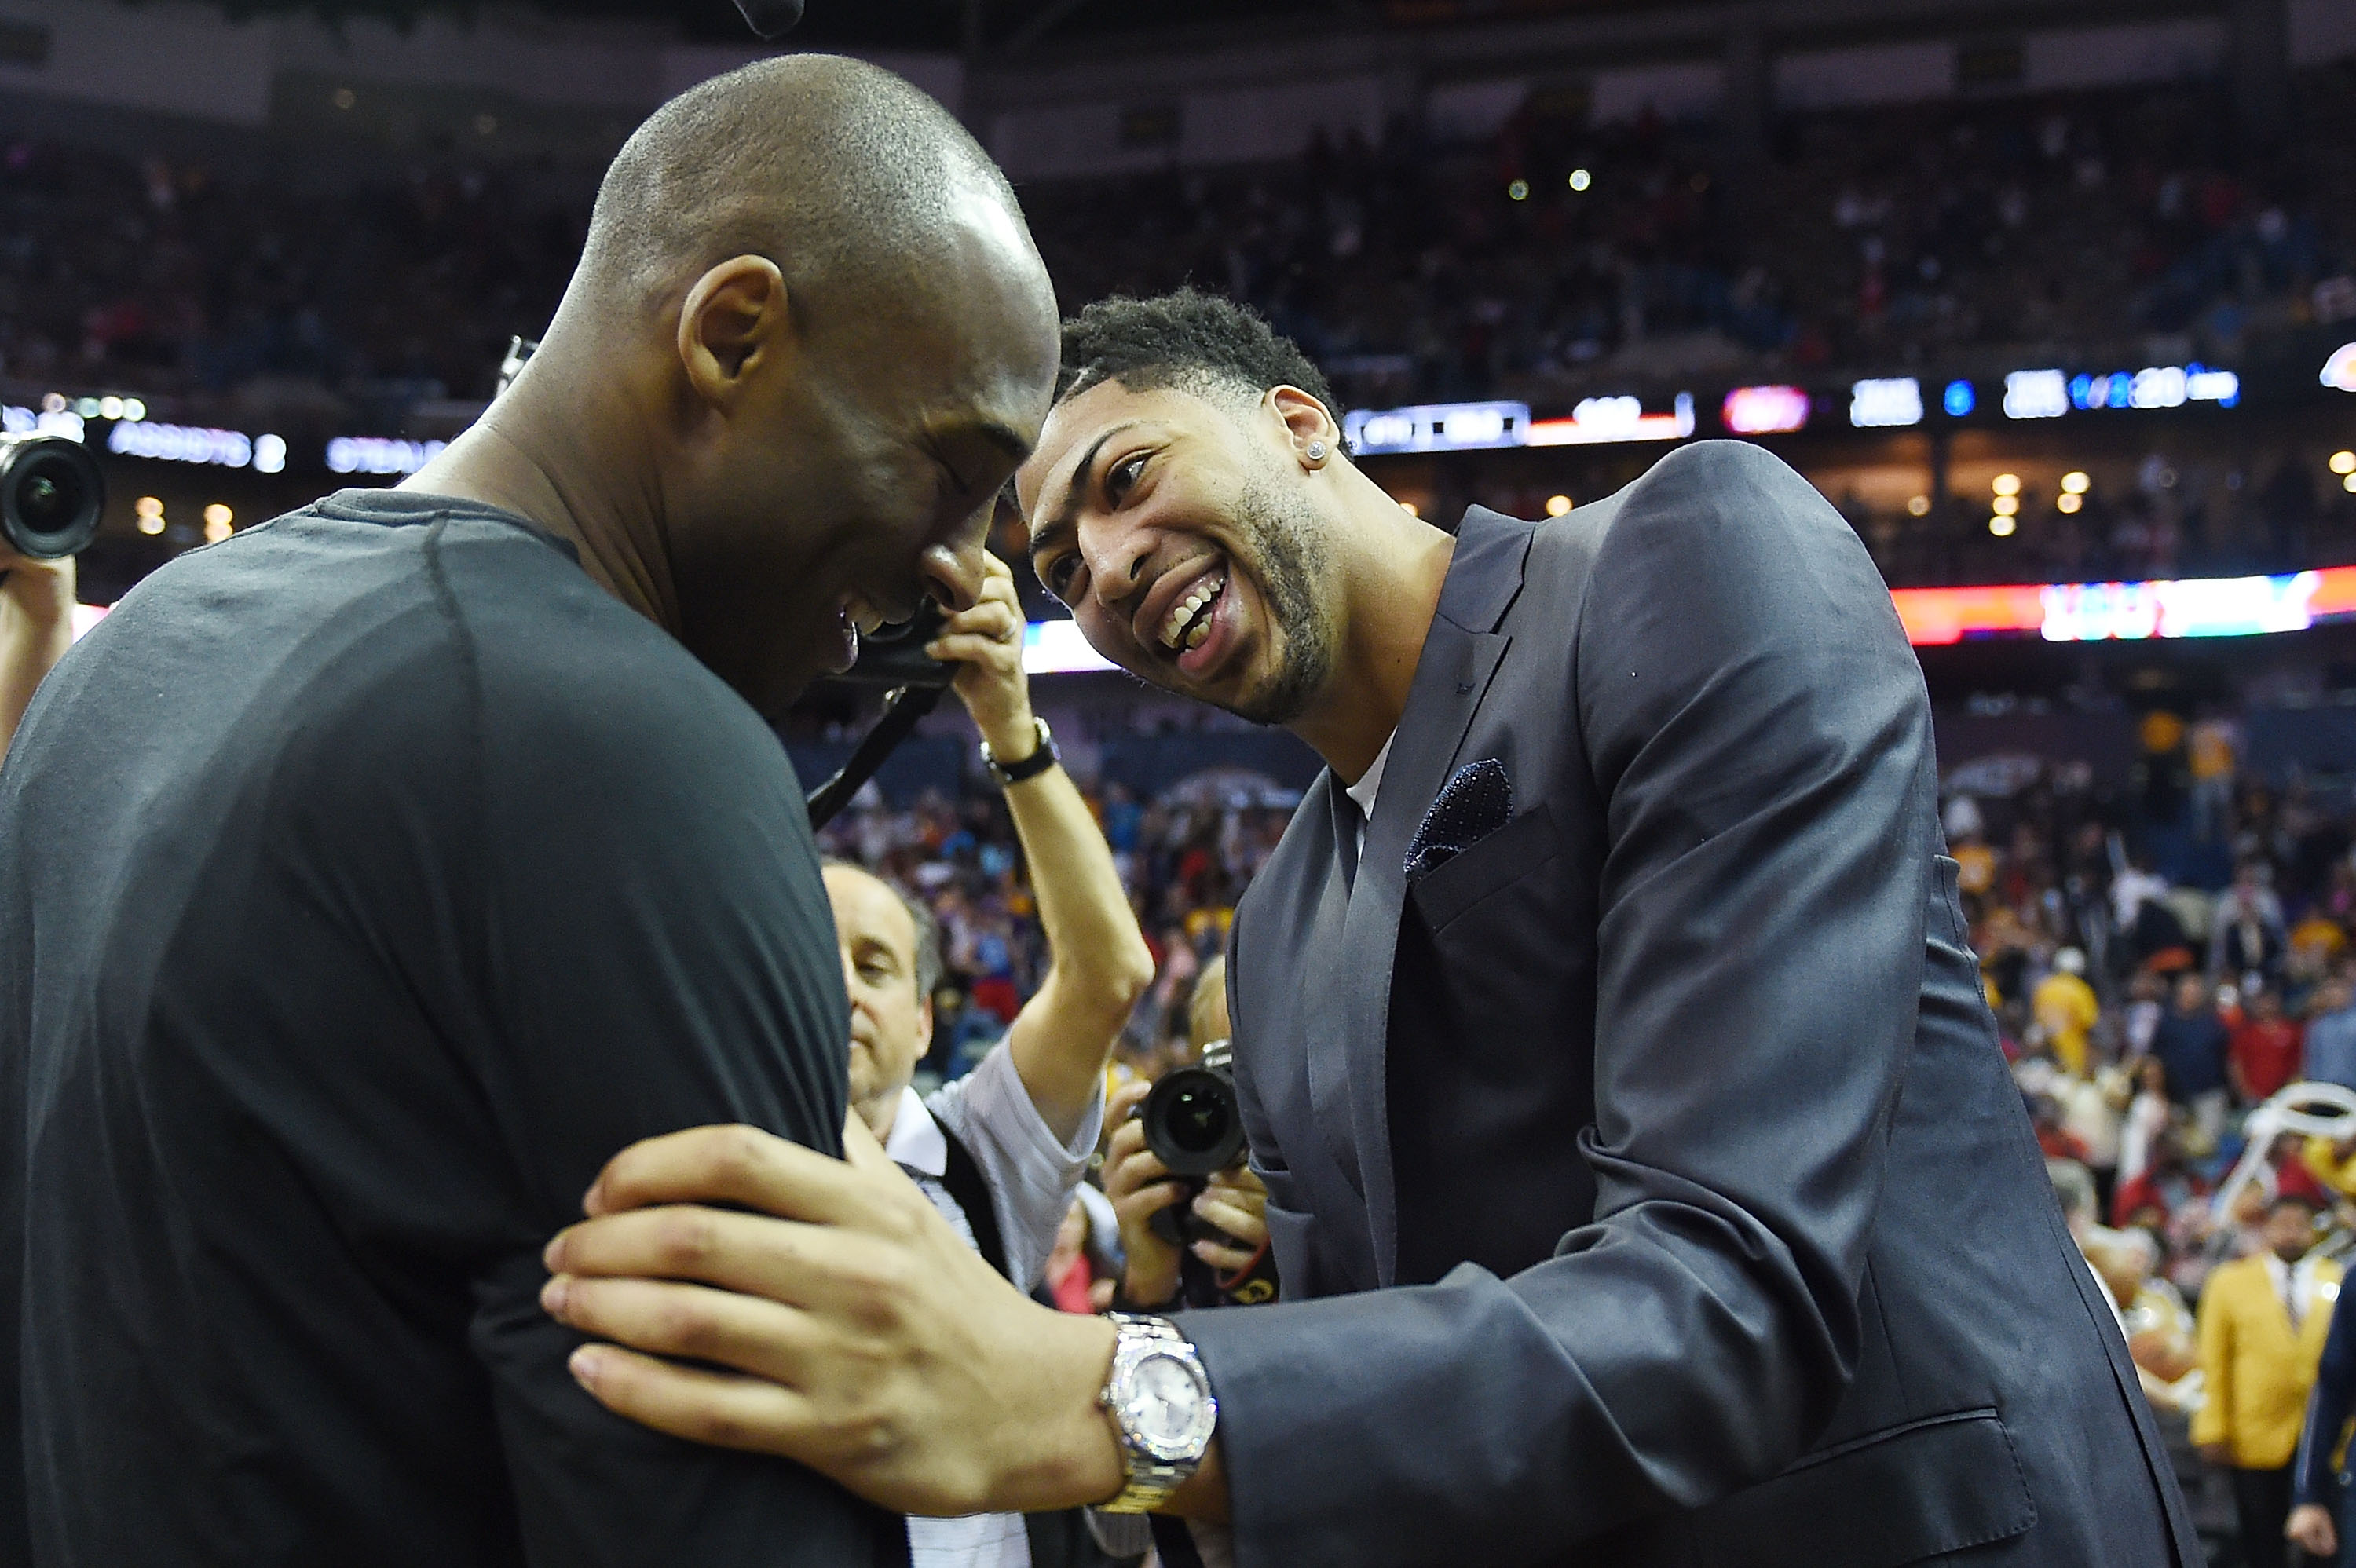 NEW ORLEANS, LA - APRIL 08:  Anthony Davis #23 of the New Orleans Pelicans embraces Kobe Bryant #24 of the Los Angeles Lakers following a game at the Smoothie King Center on April 8, 2016 in New Orleans, Louisiana. (Photo by Stacy Revere/Getty Images)